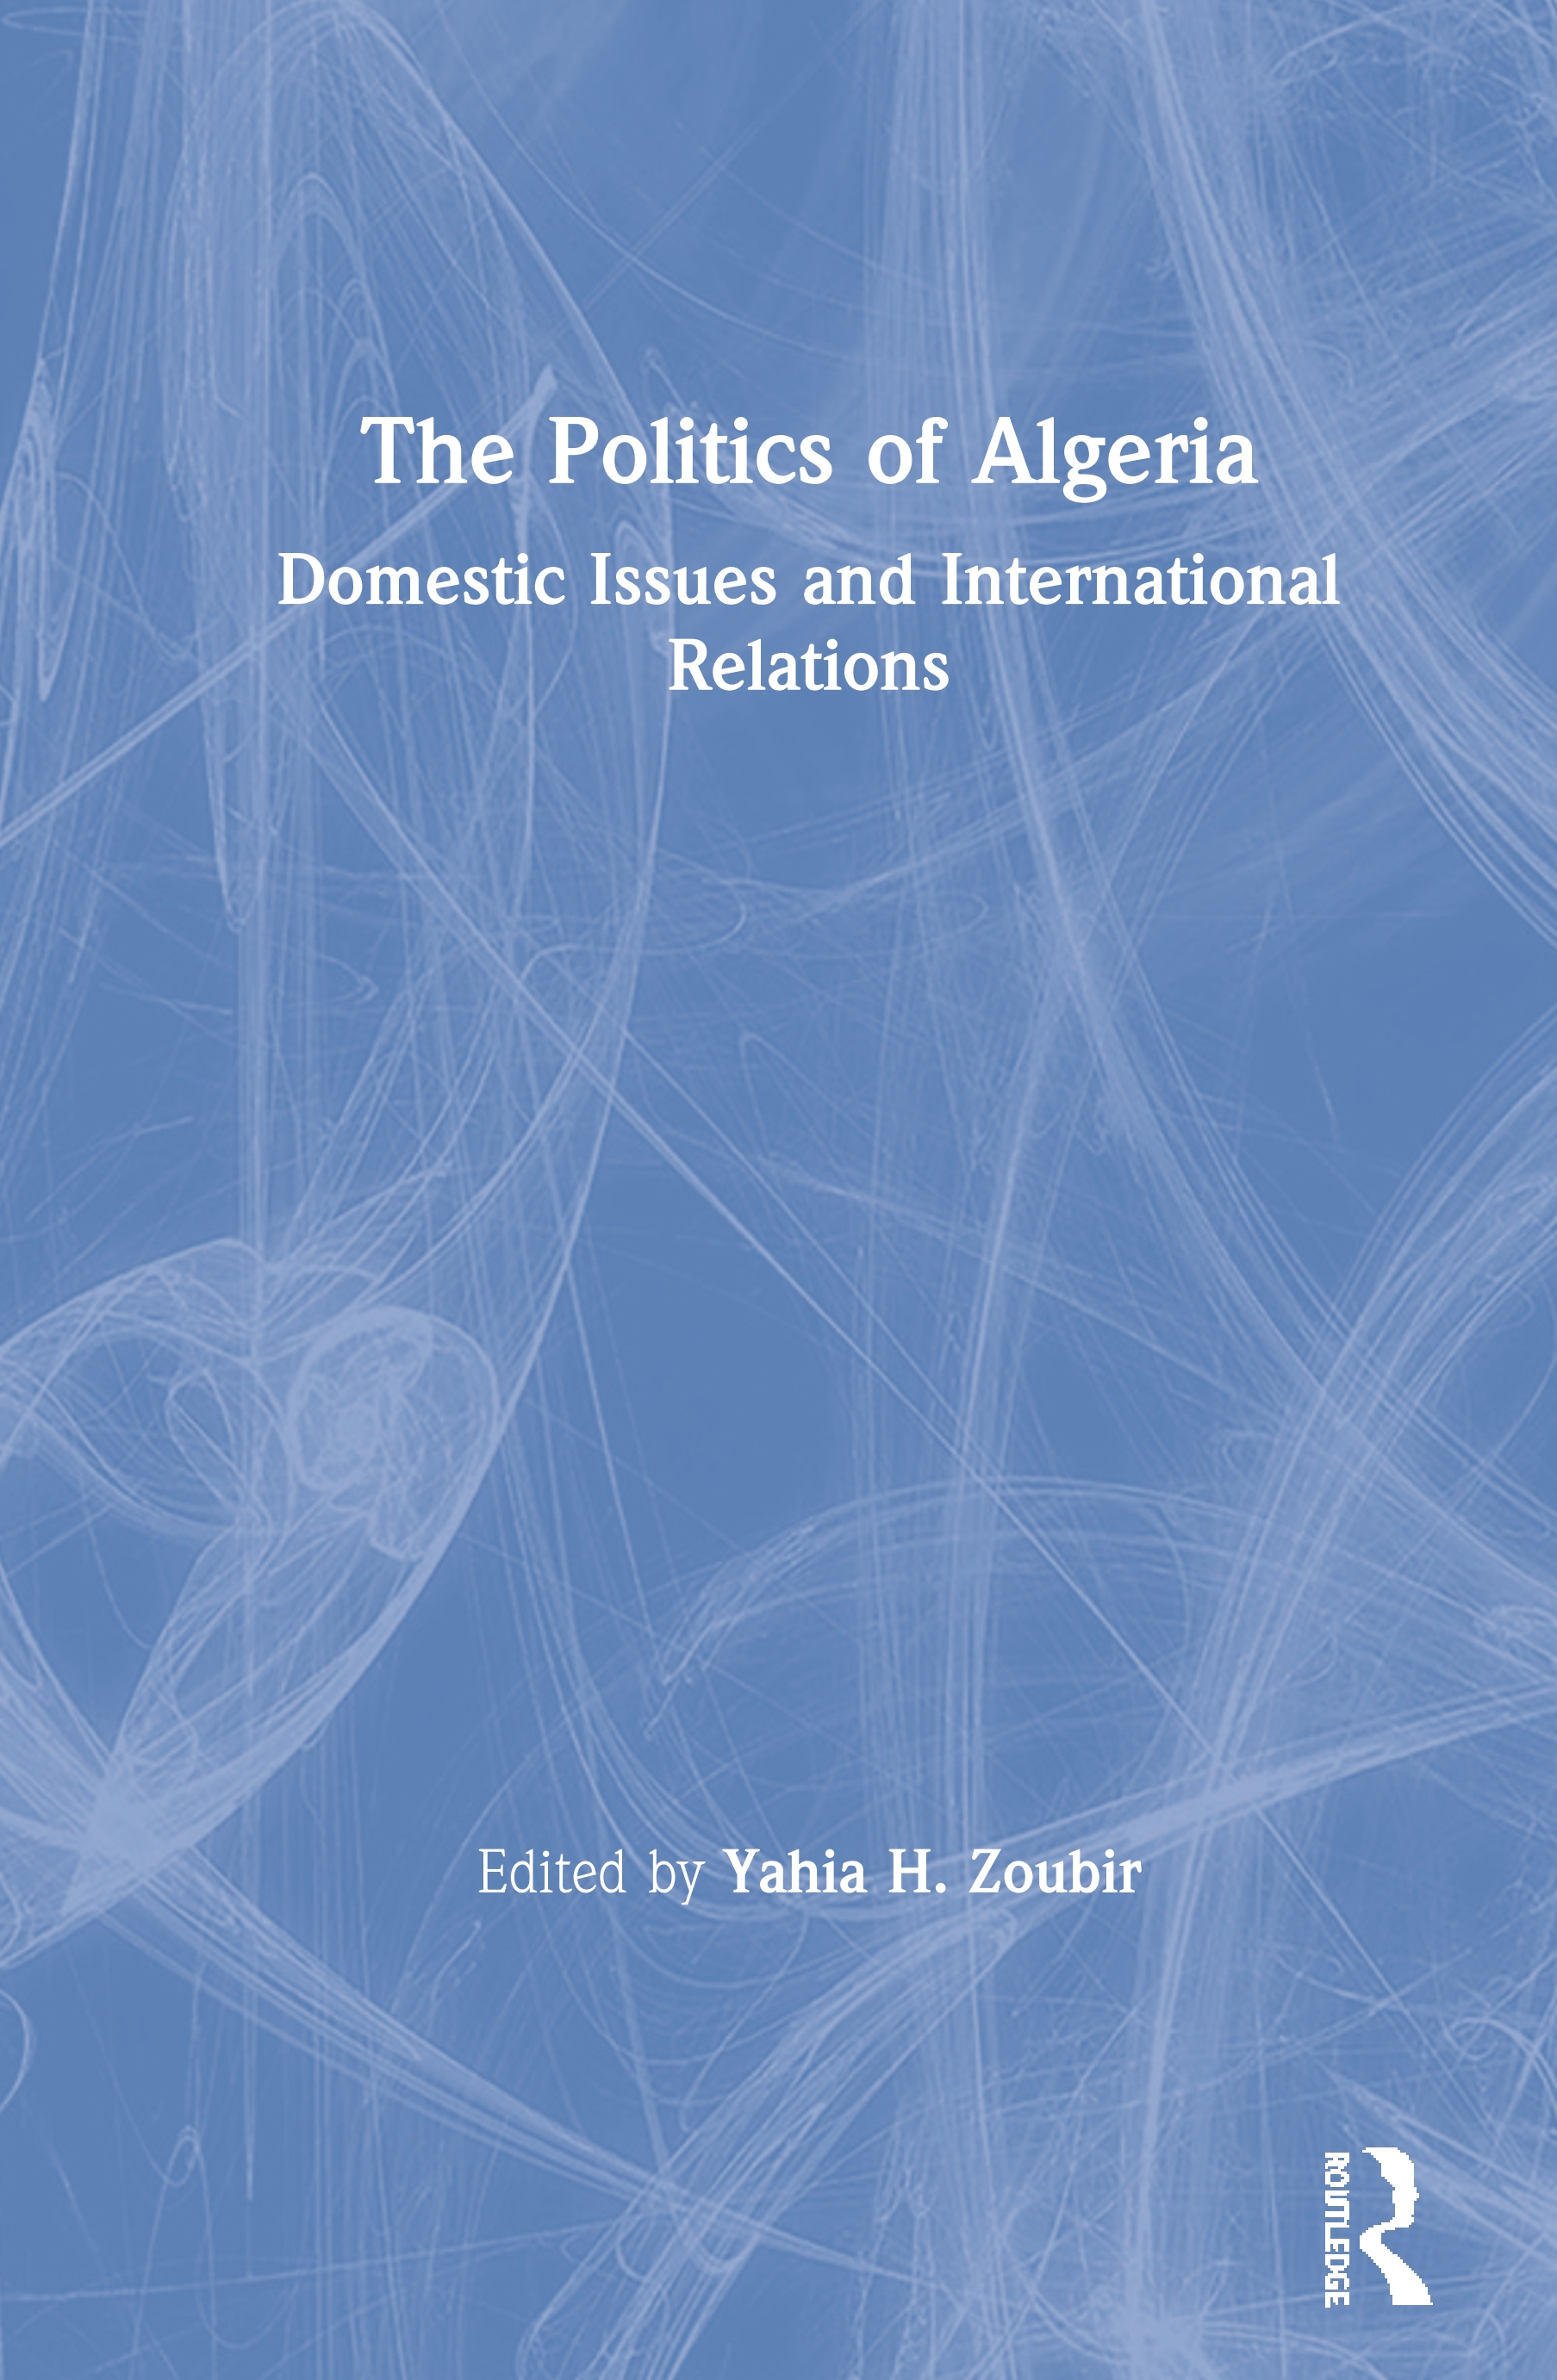 The Politics of Algeria: Domestic Issues and International Relations book cover